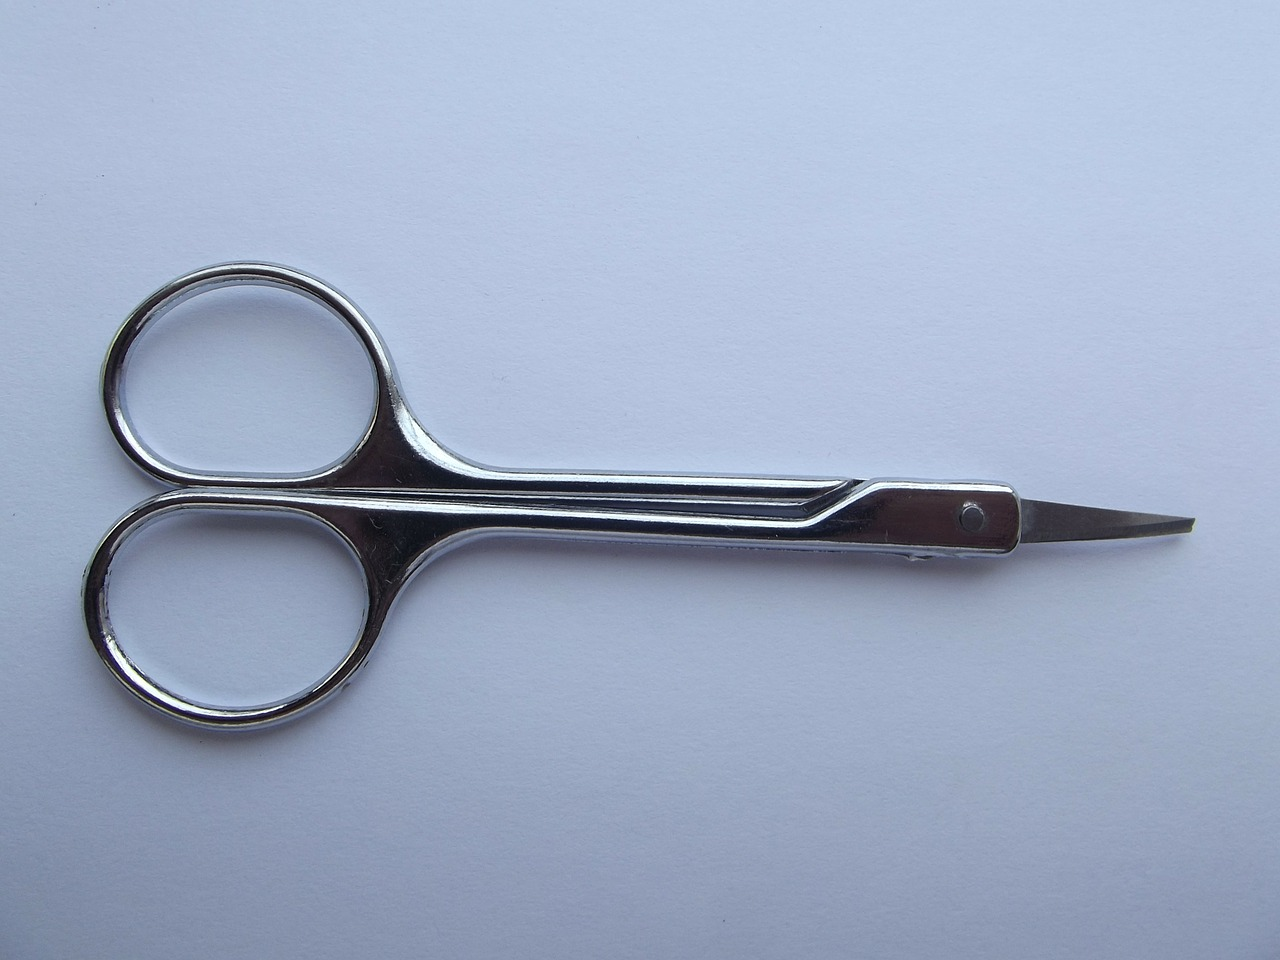 scissor scissors button free photo